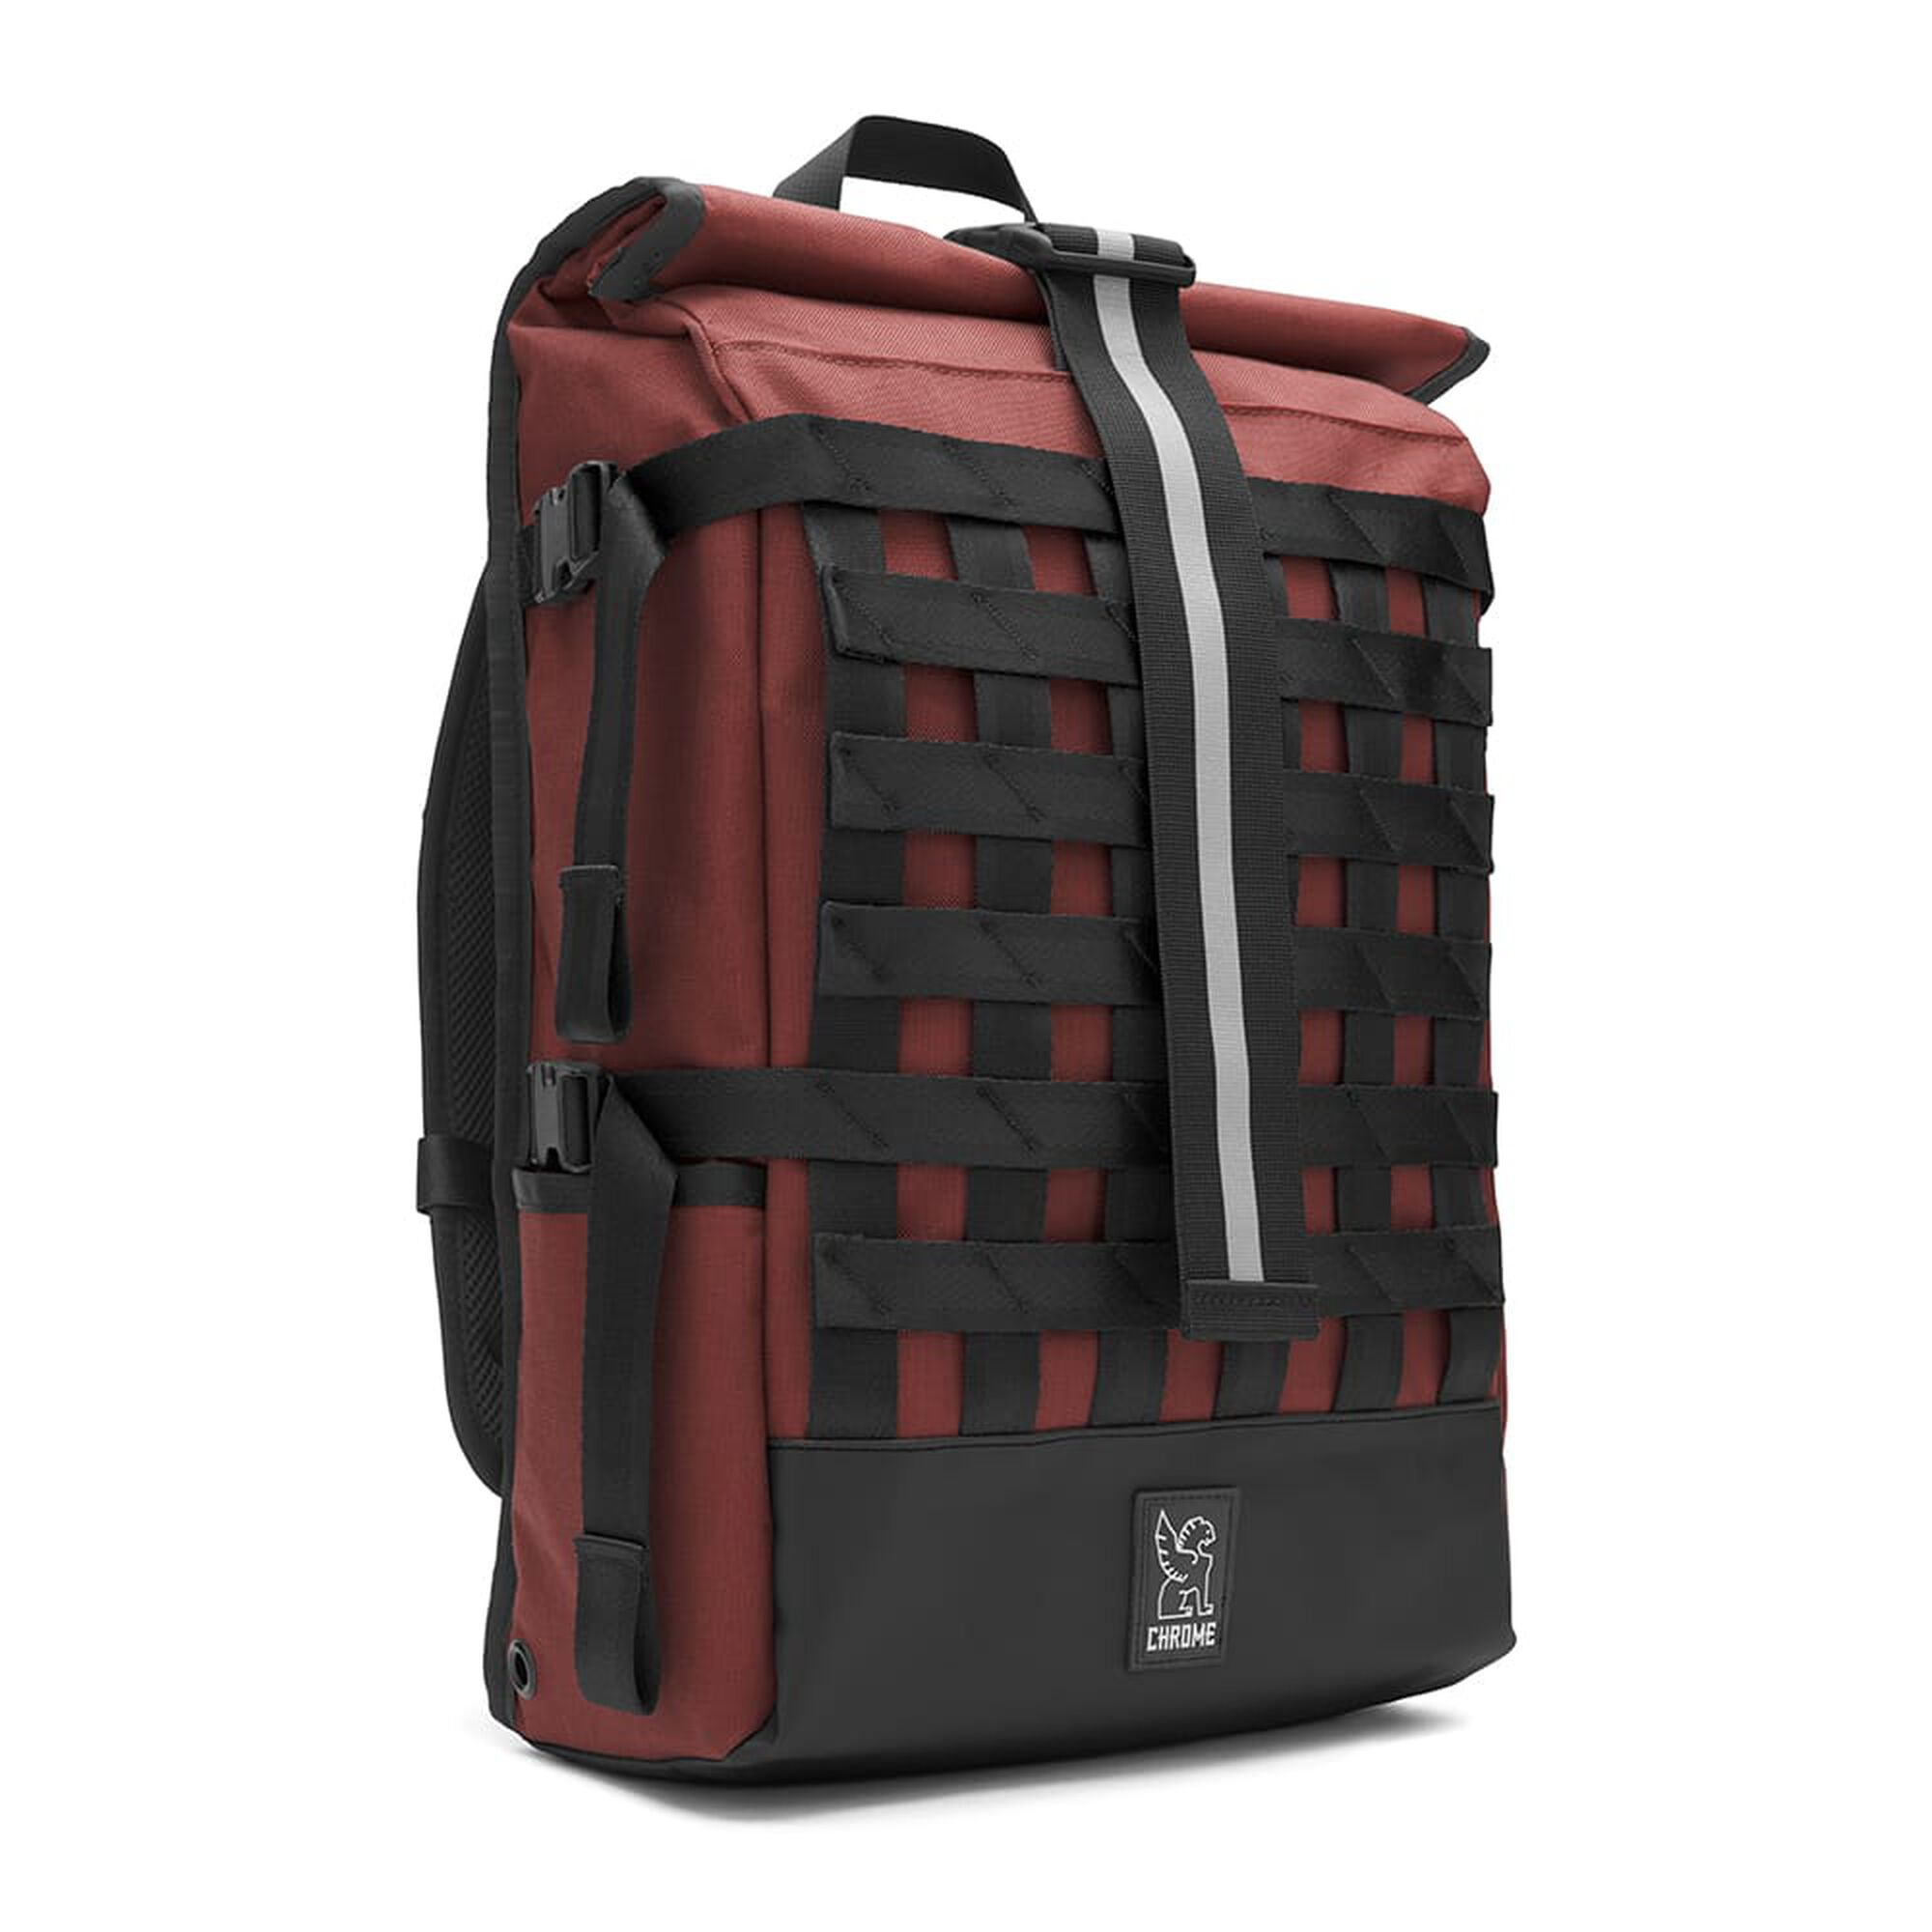 Barrage Cargo Backpack - Fits laptops up to 15